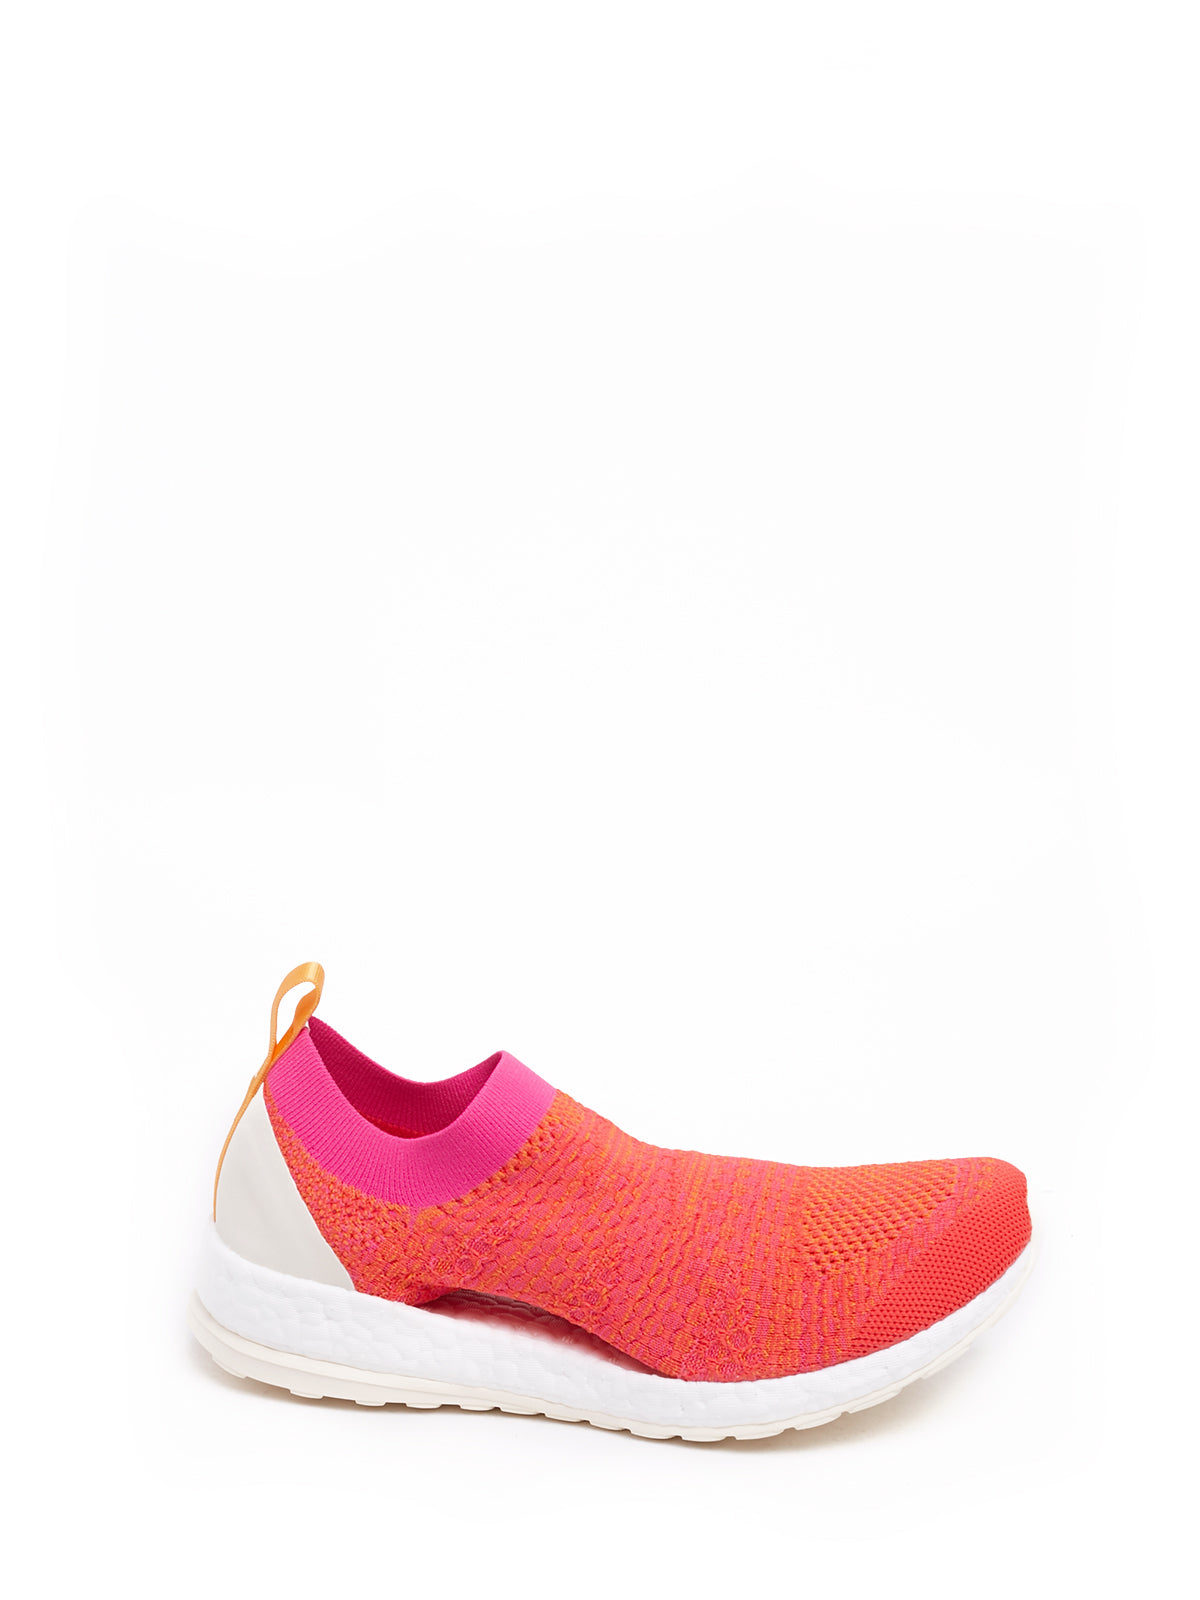 ADIDAS BY STELLA MCCARTNEY PURE BOOST X SNEAKERS